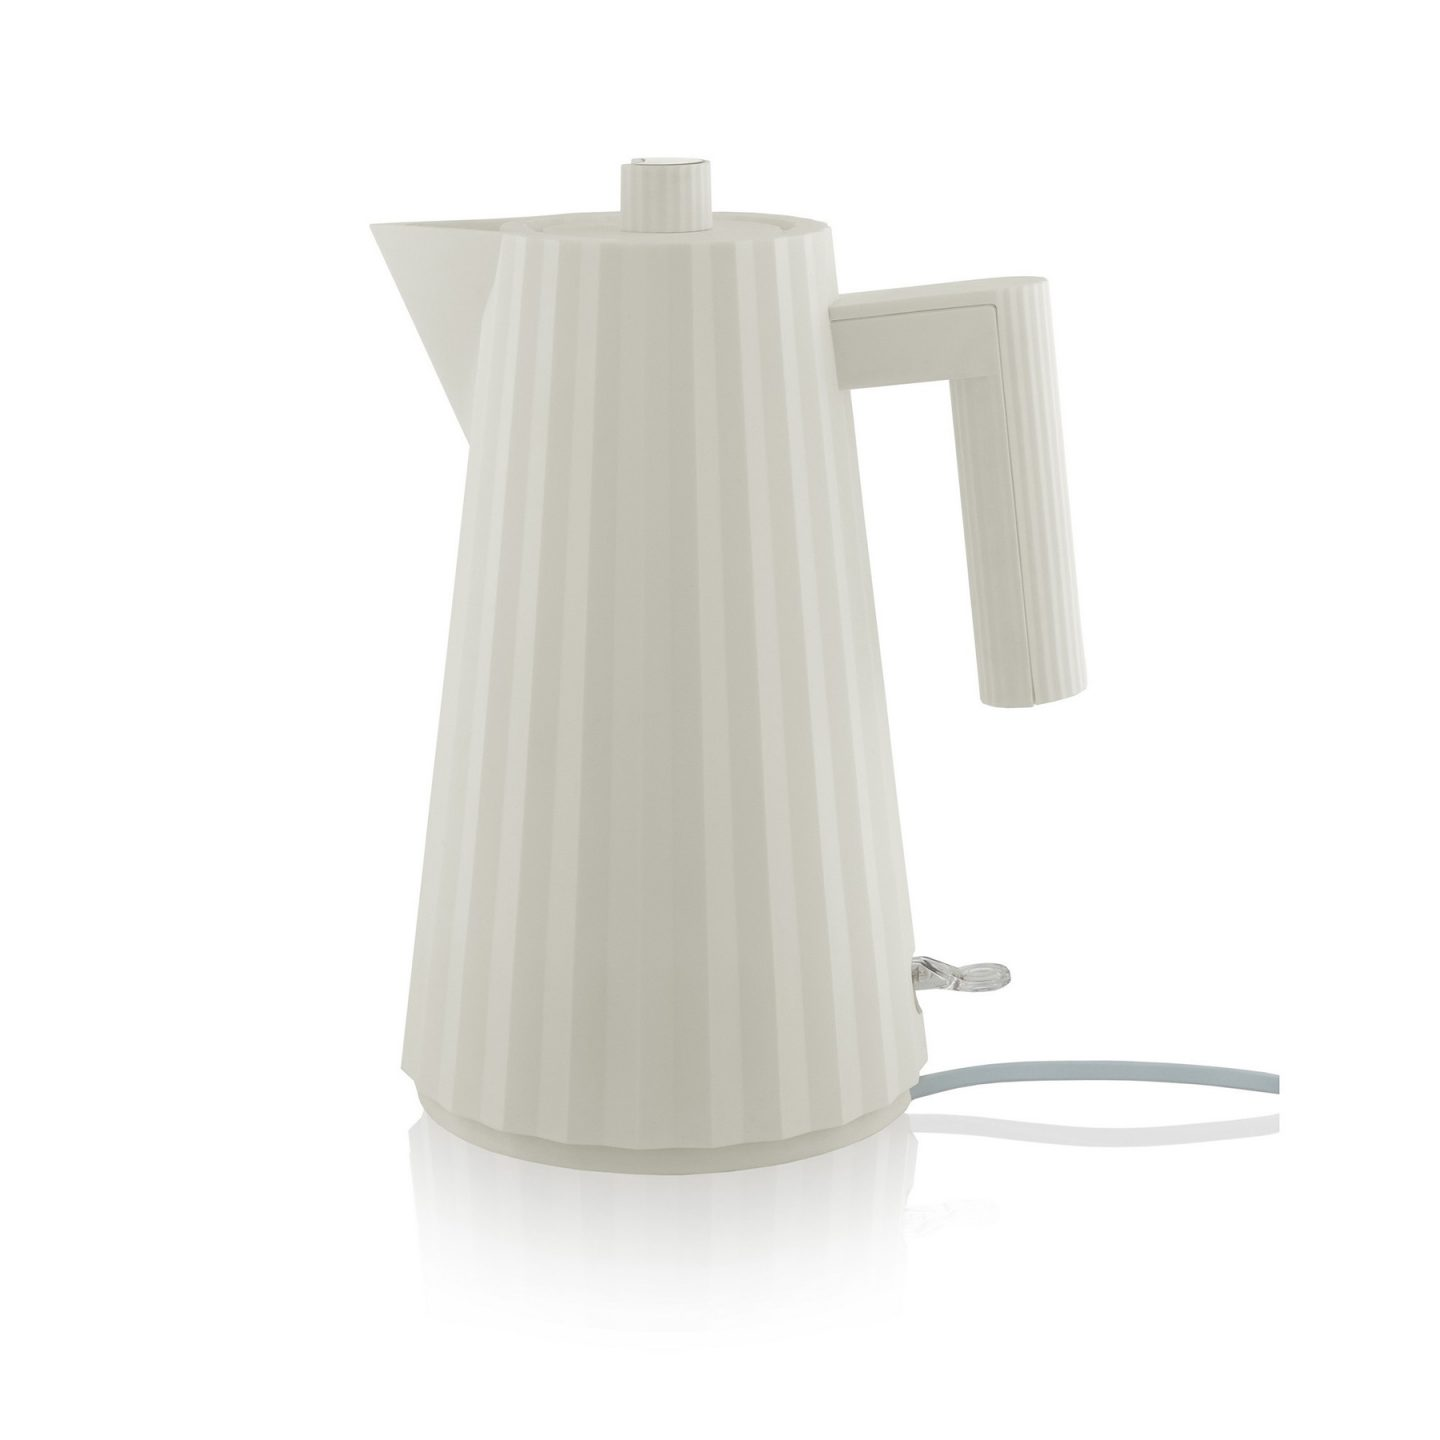 IGNANT-Design-Kitchen-Alesi-Plisse-Kettle-3